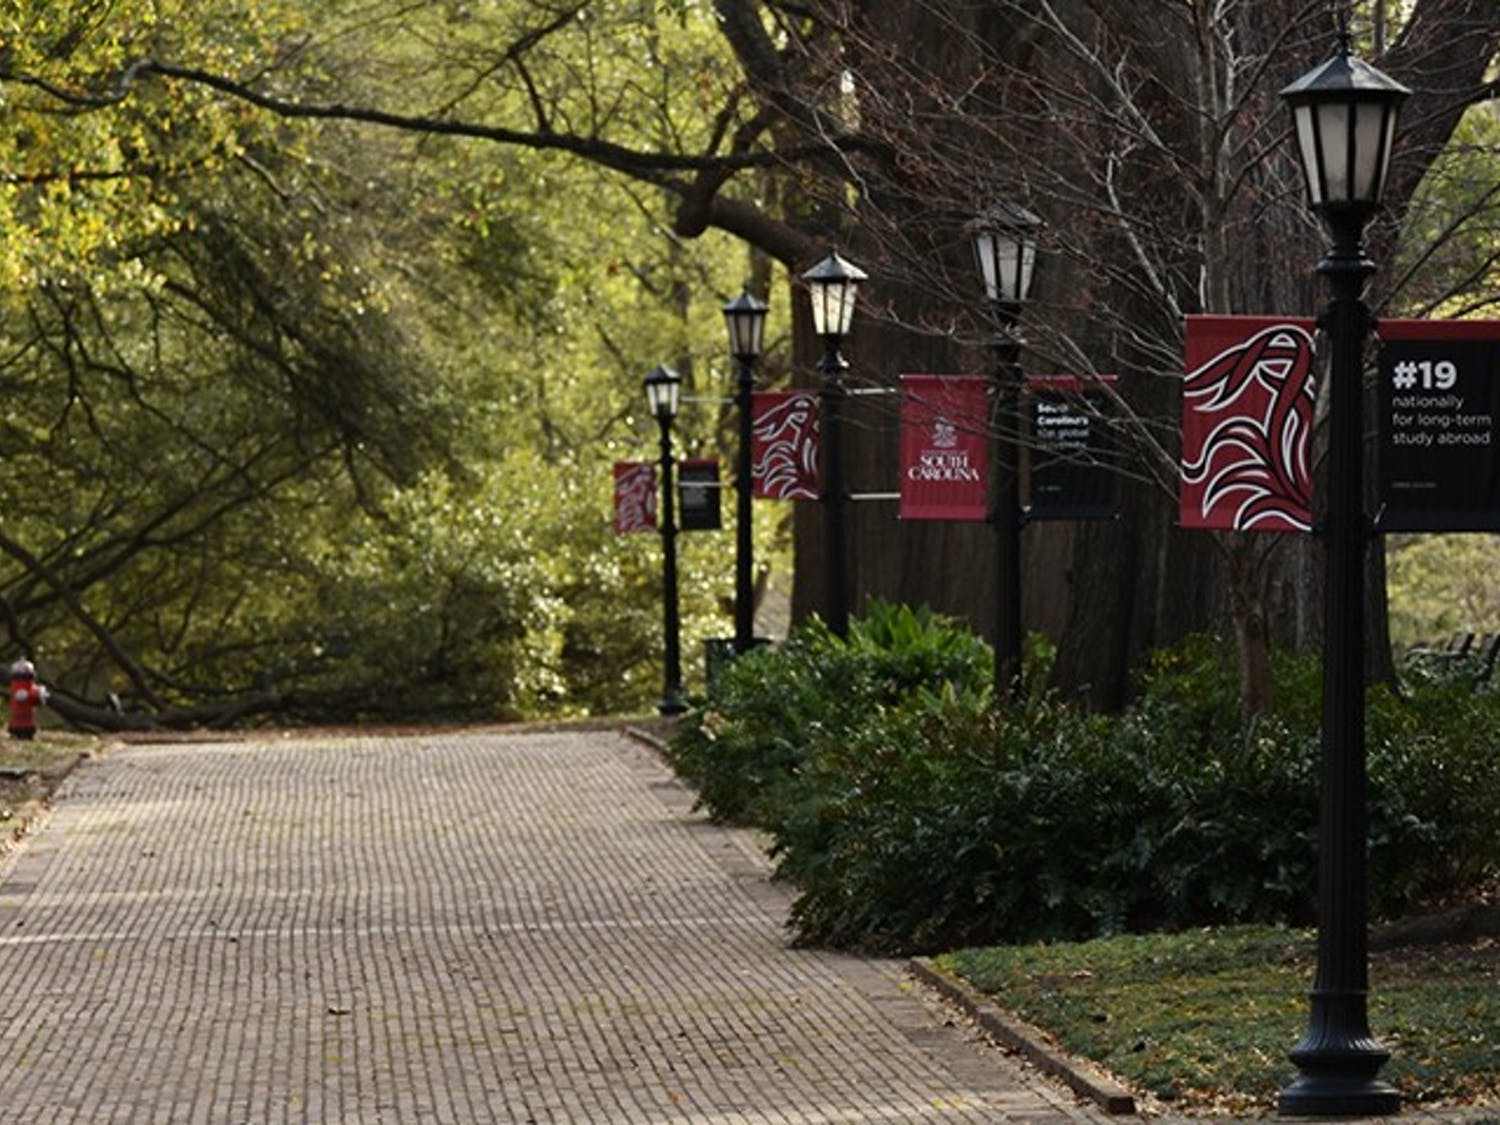 Lightposts line the edge of the Horseshoe with USC flags hanging on either side.